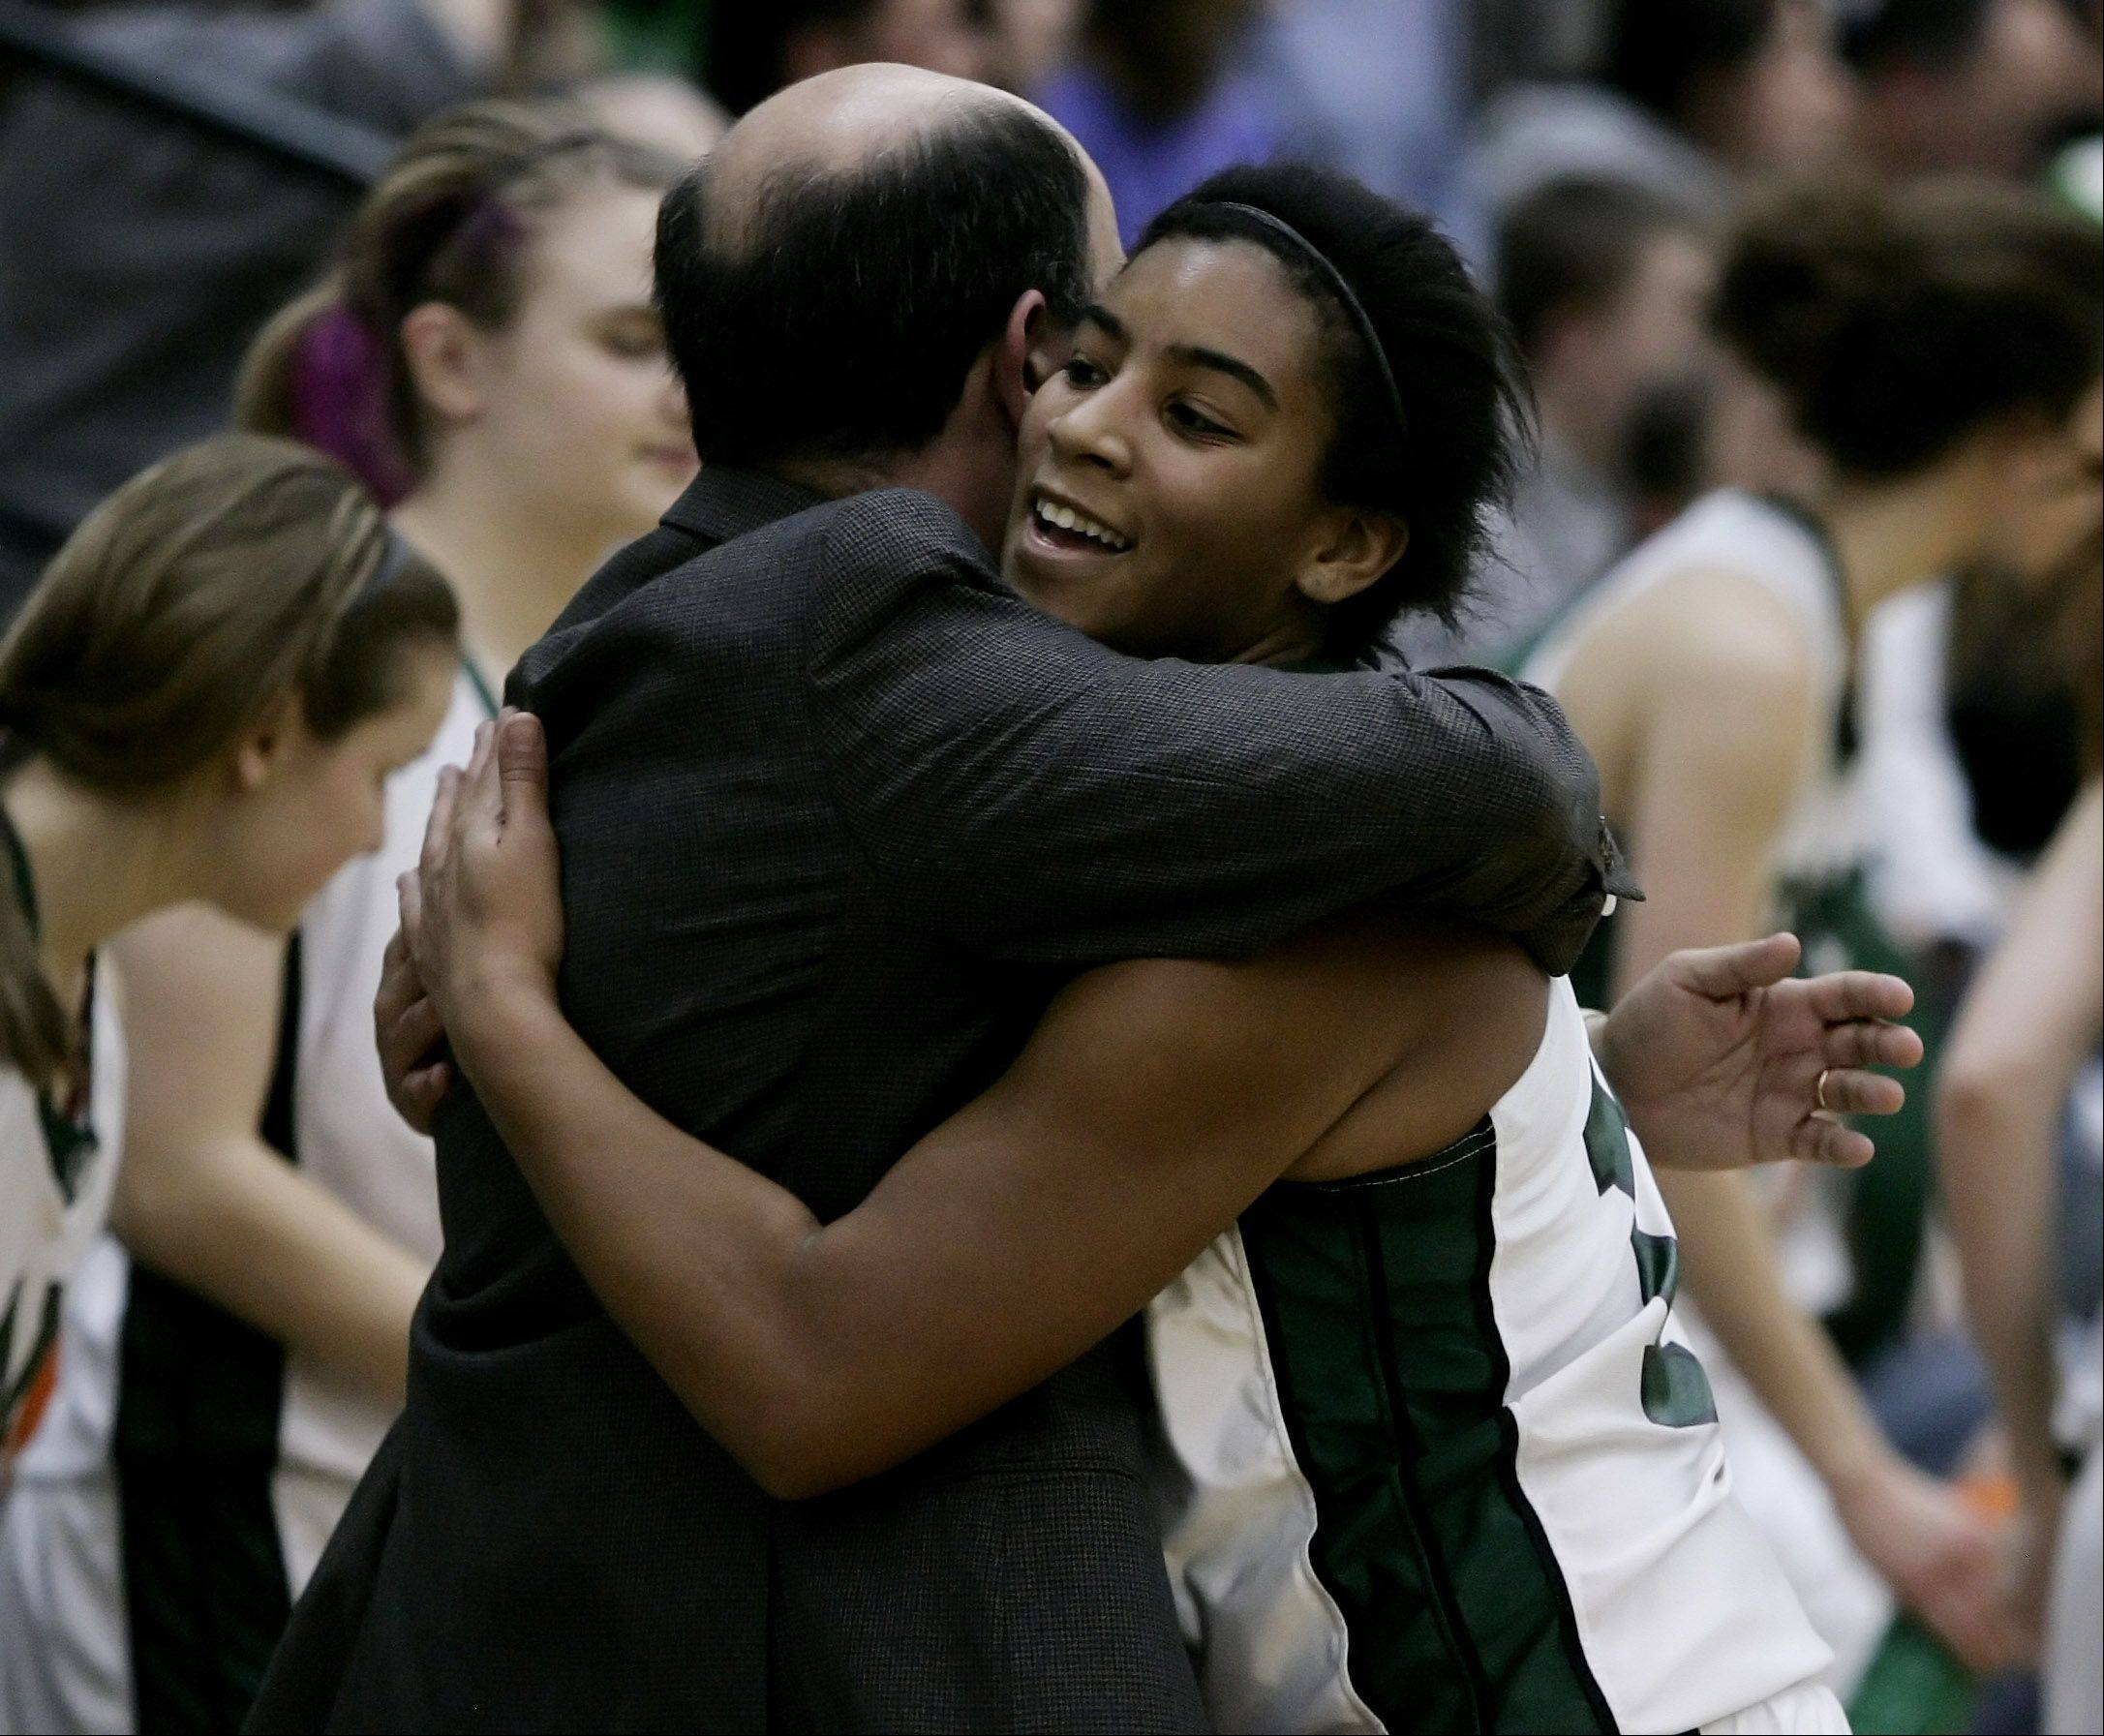 Grayslake Central guard Alex Scarbro is hugged by coach Steve Ikenn during the Class 3A girls high school sectional basketball championship against Johnsburg.